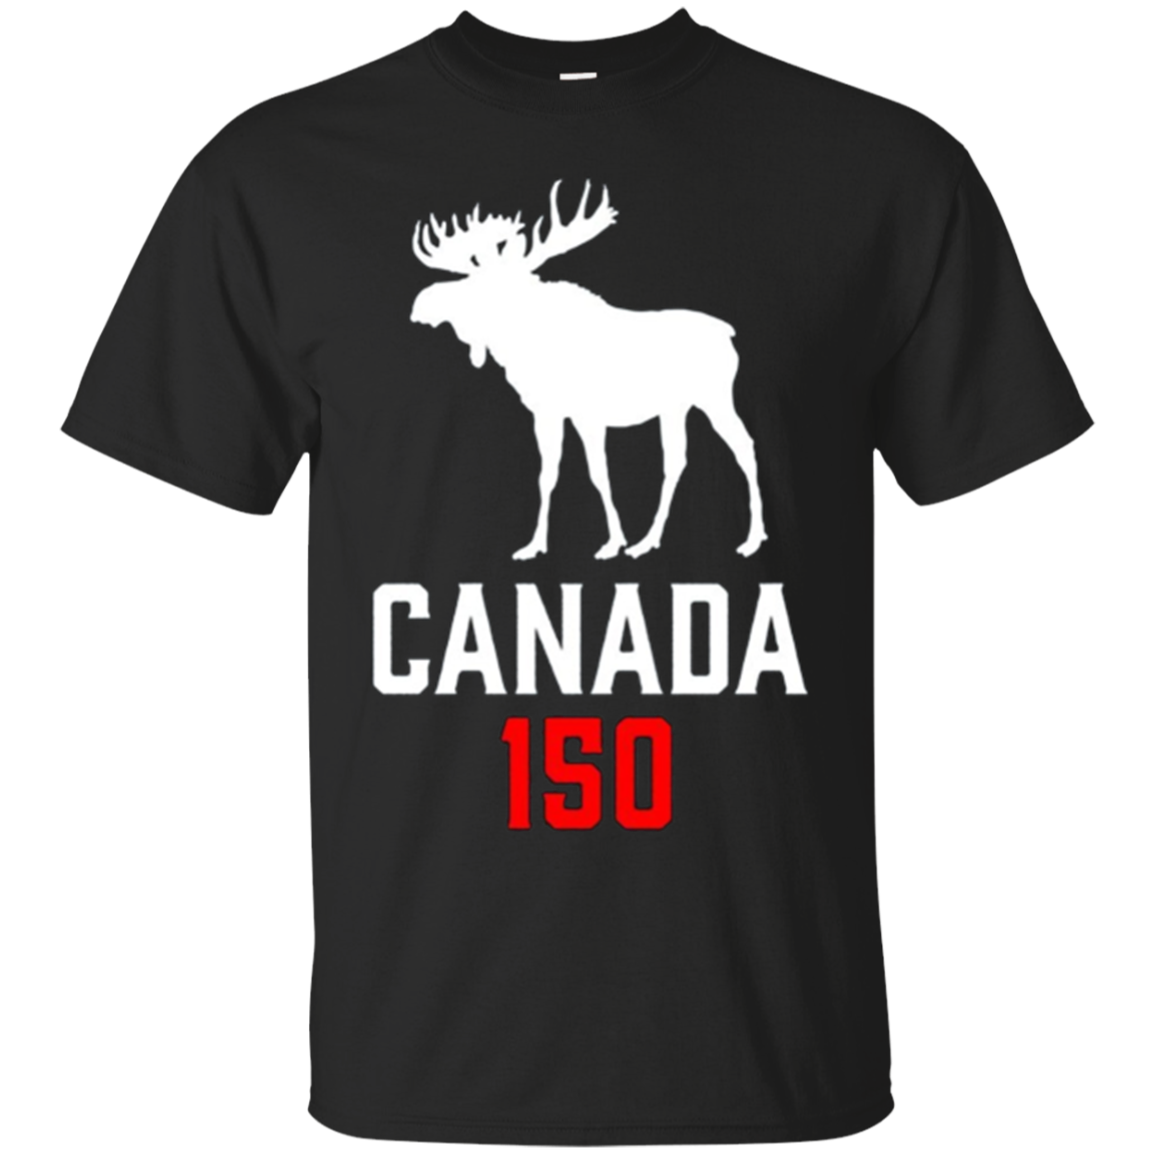 Canada Moose 150 Canadian Confederation Proud 150th T-Shirt